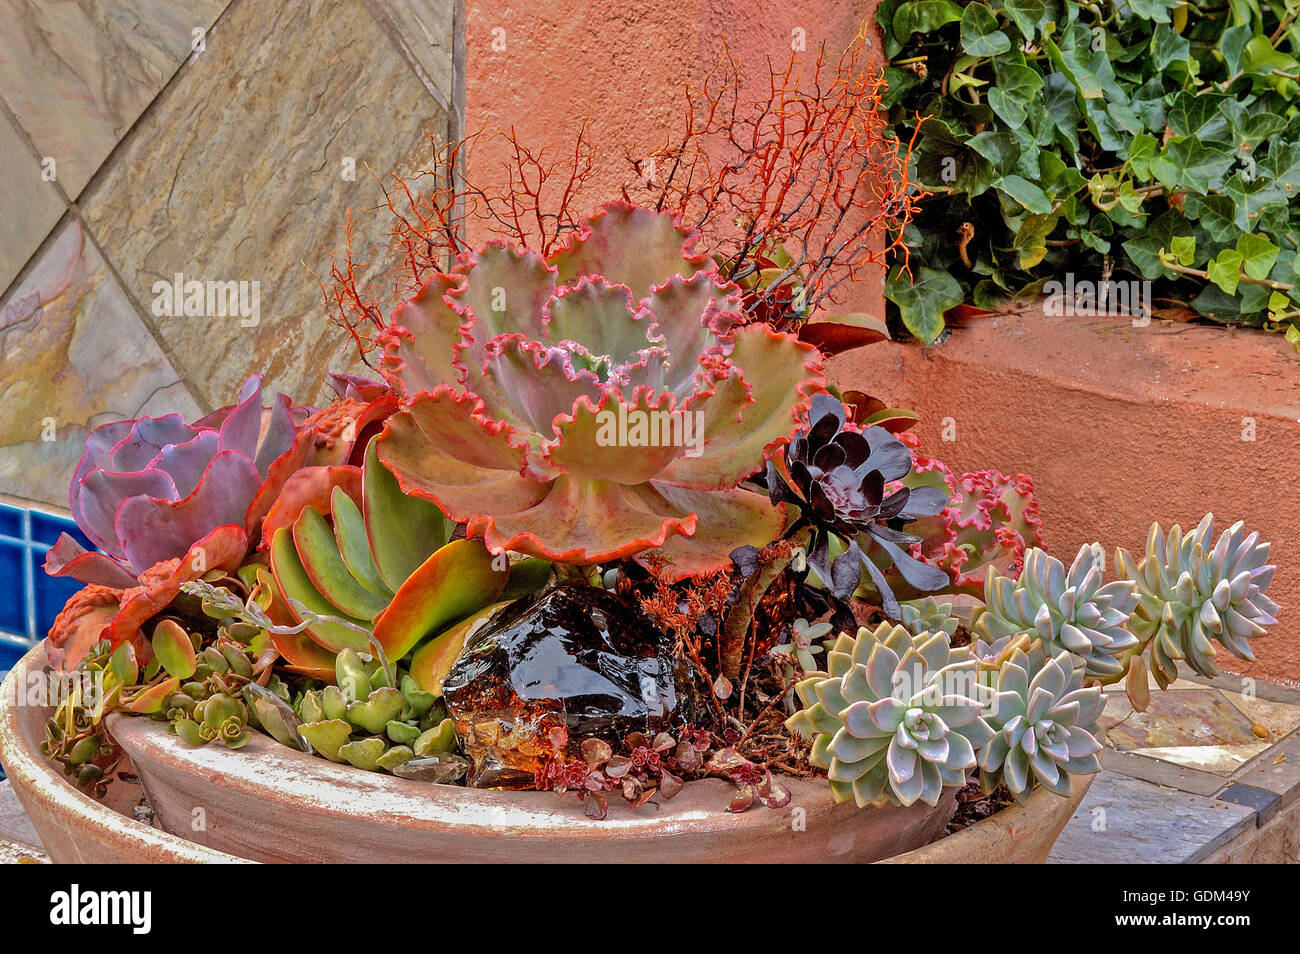 Saucer planted with succulents:  Echeveria, Aeonium, Kalanchoe, - Stock Image